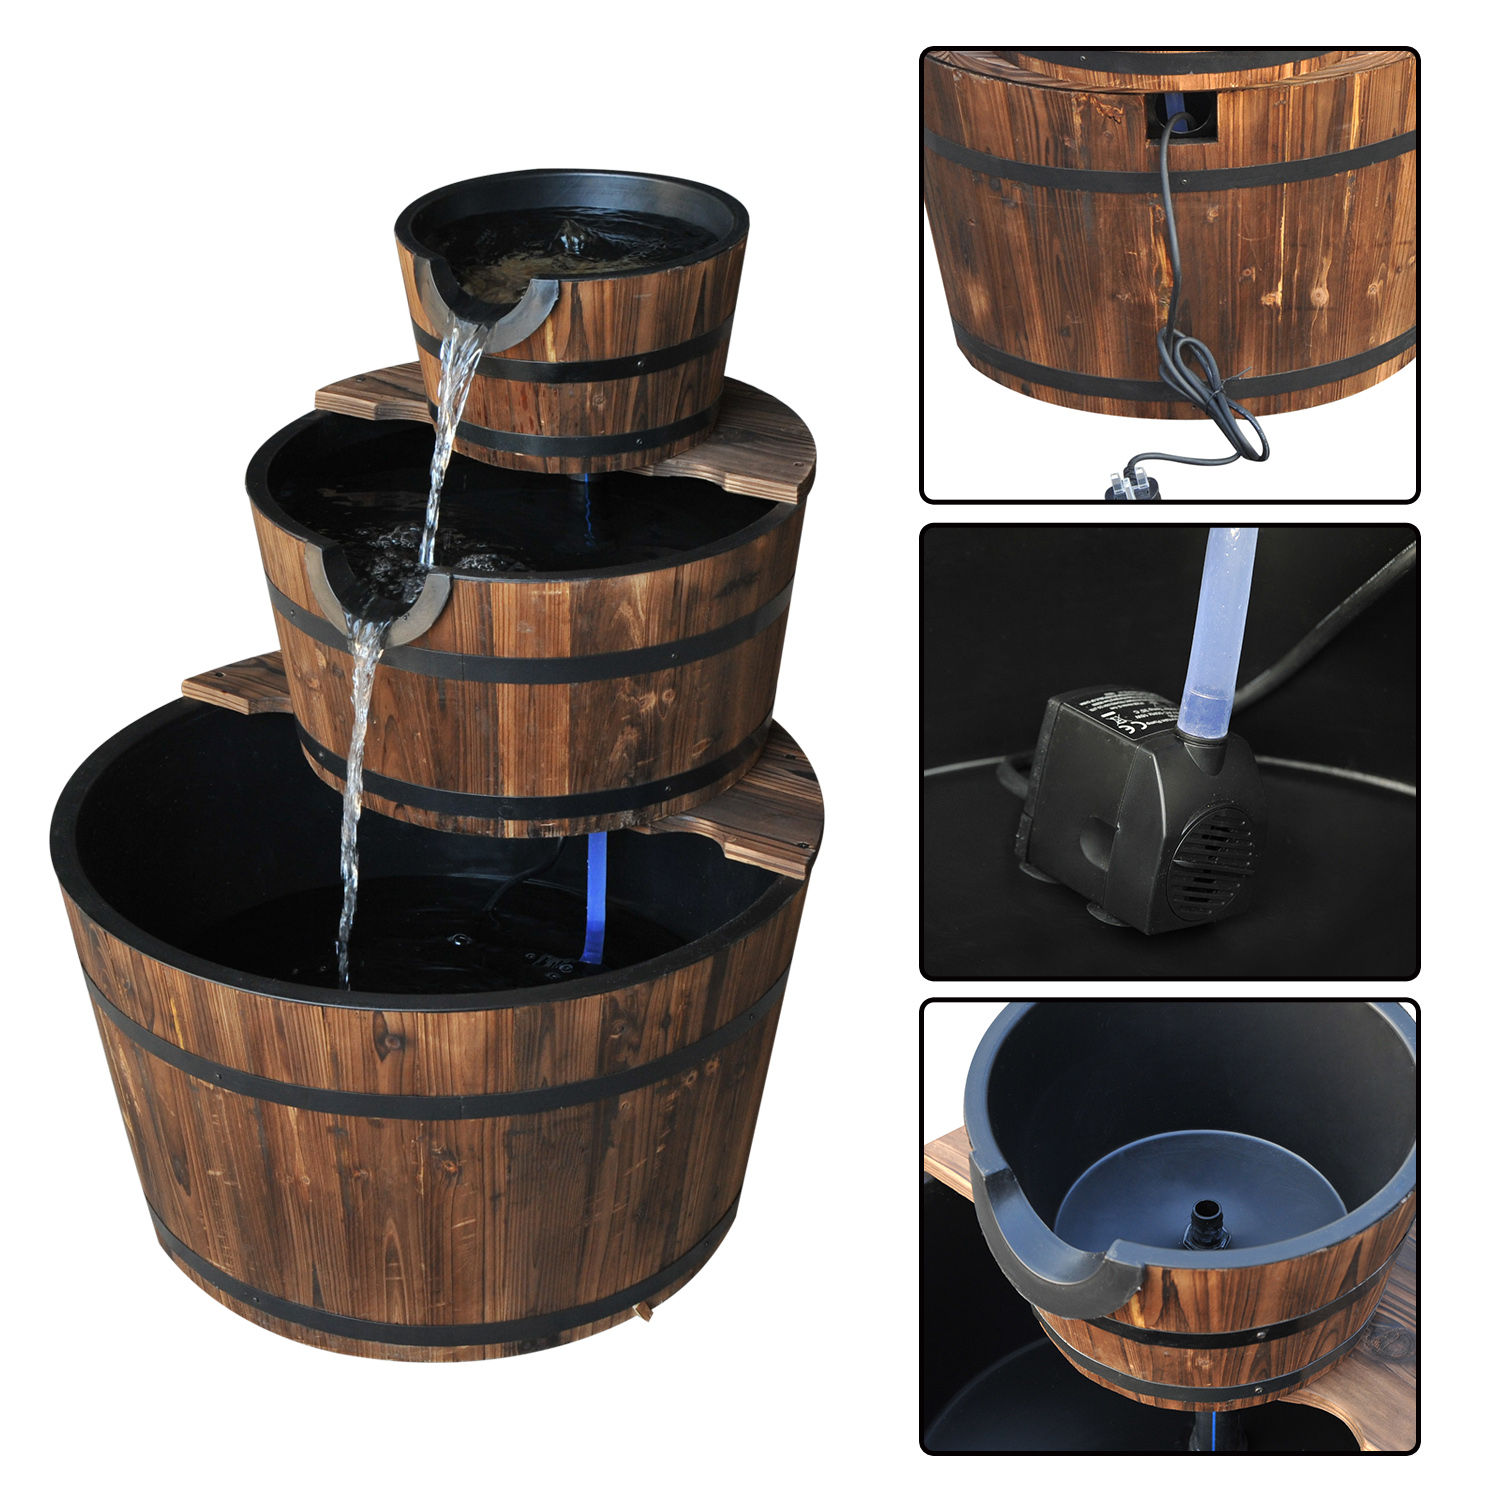 Image of £84.99 Outsunny Wooden Water Pump Fountain, 3 Tier-Fir Wood/Steel / Fountain Cascading Feature Barrel Garden Deck (3 Tier) 844-098 5056029889459